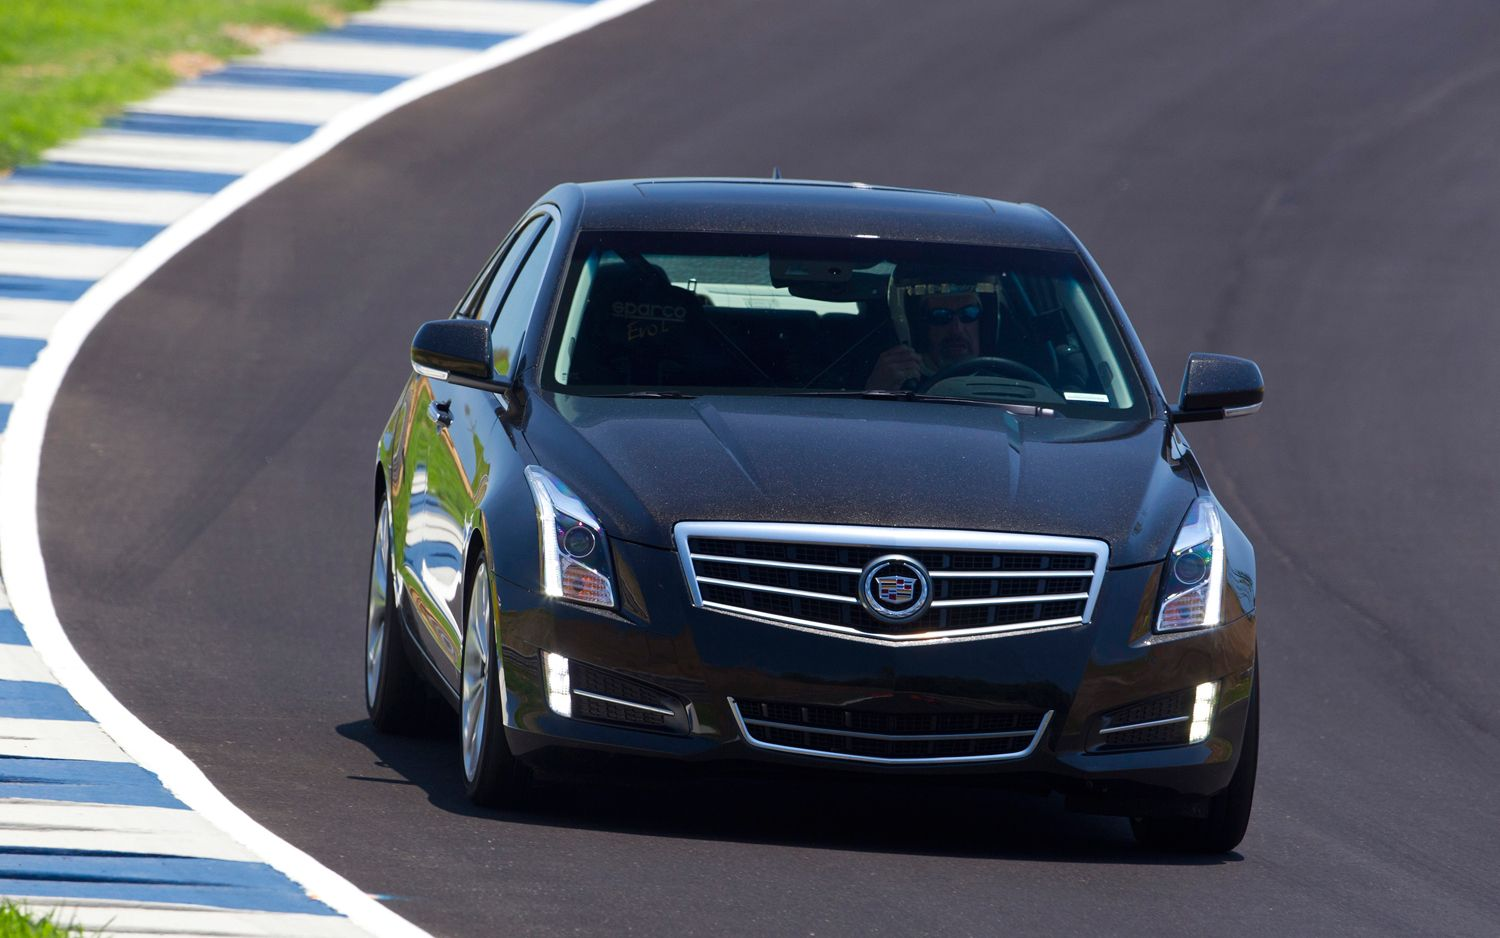 2013 Cadillac Ats 2 0t Epa Rated At 21 31 Mpg City Highway Motor Trend